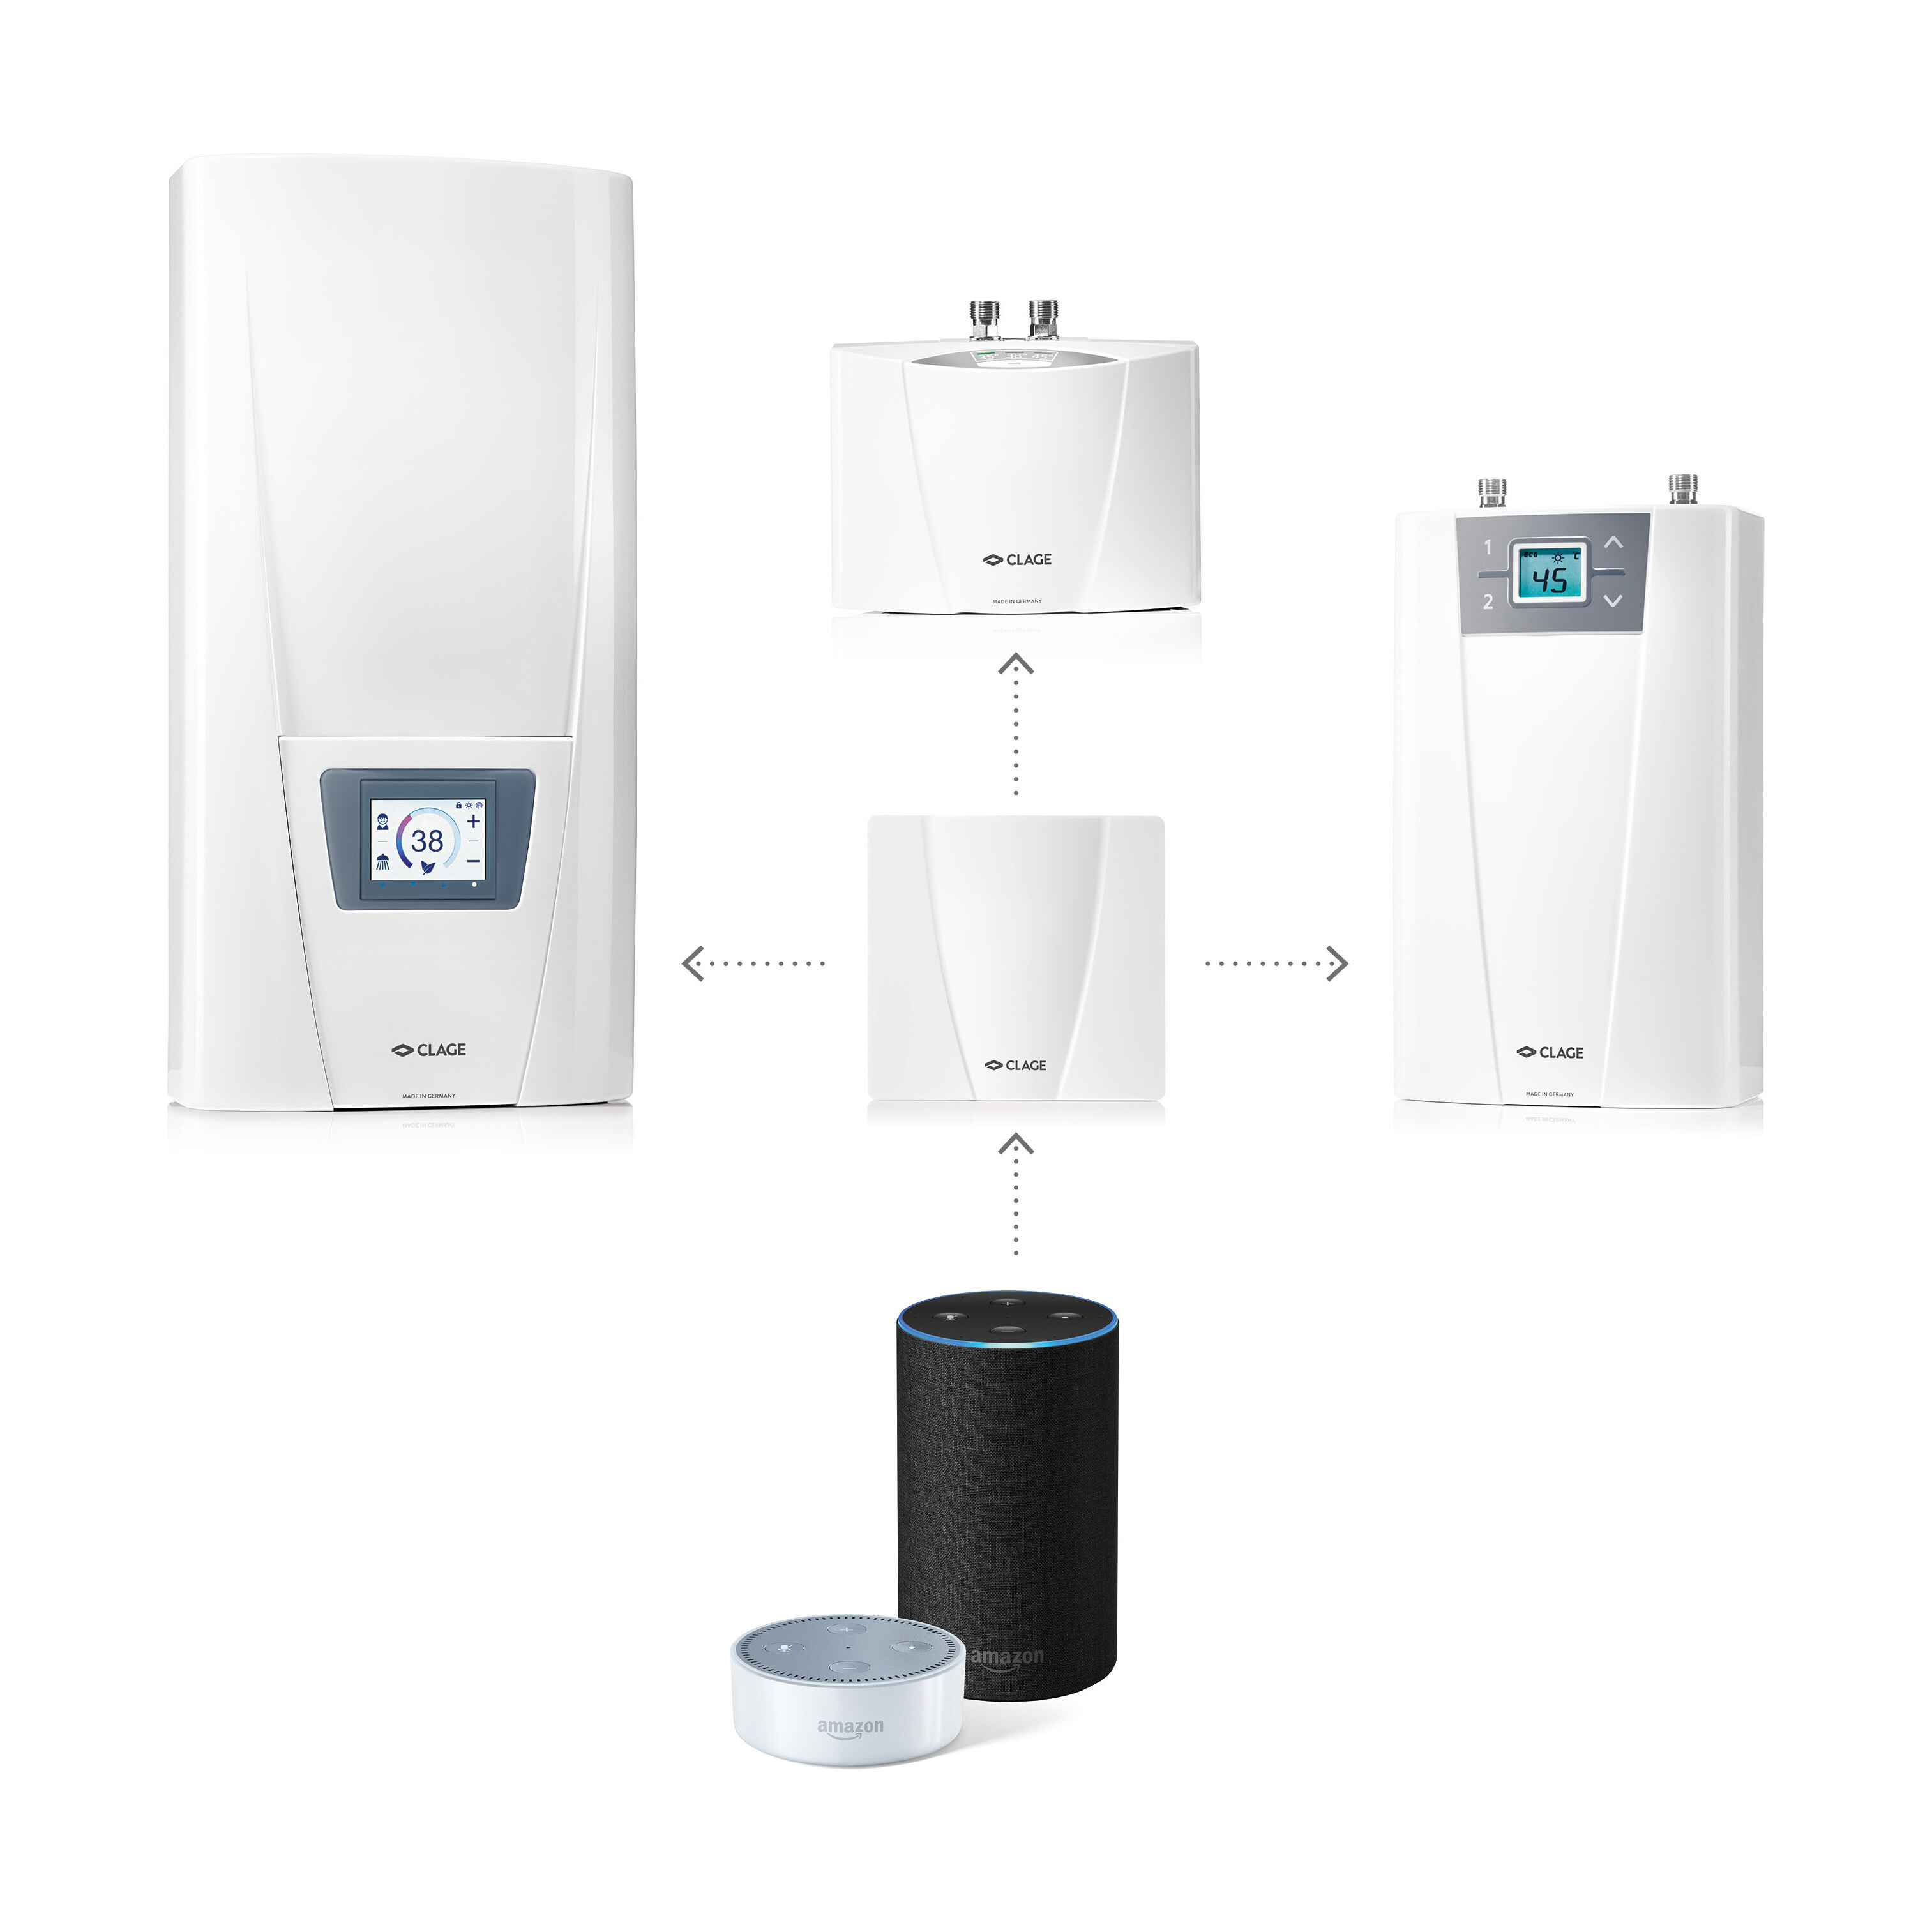 Voice control of E-instant water heaters